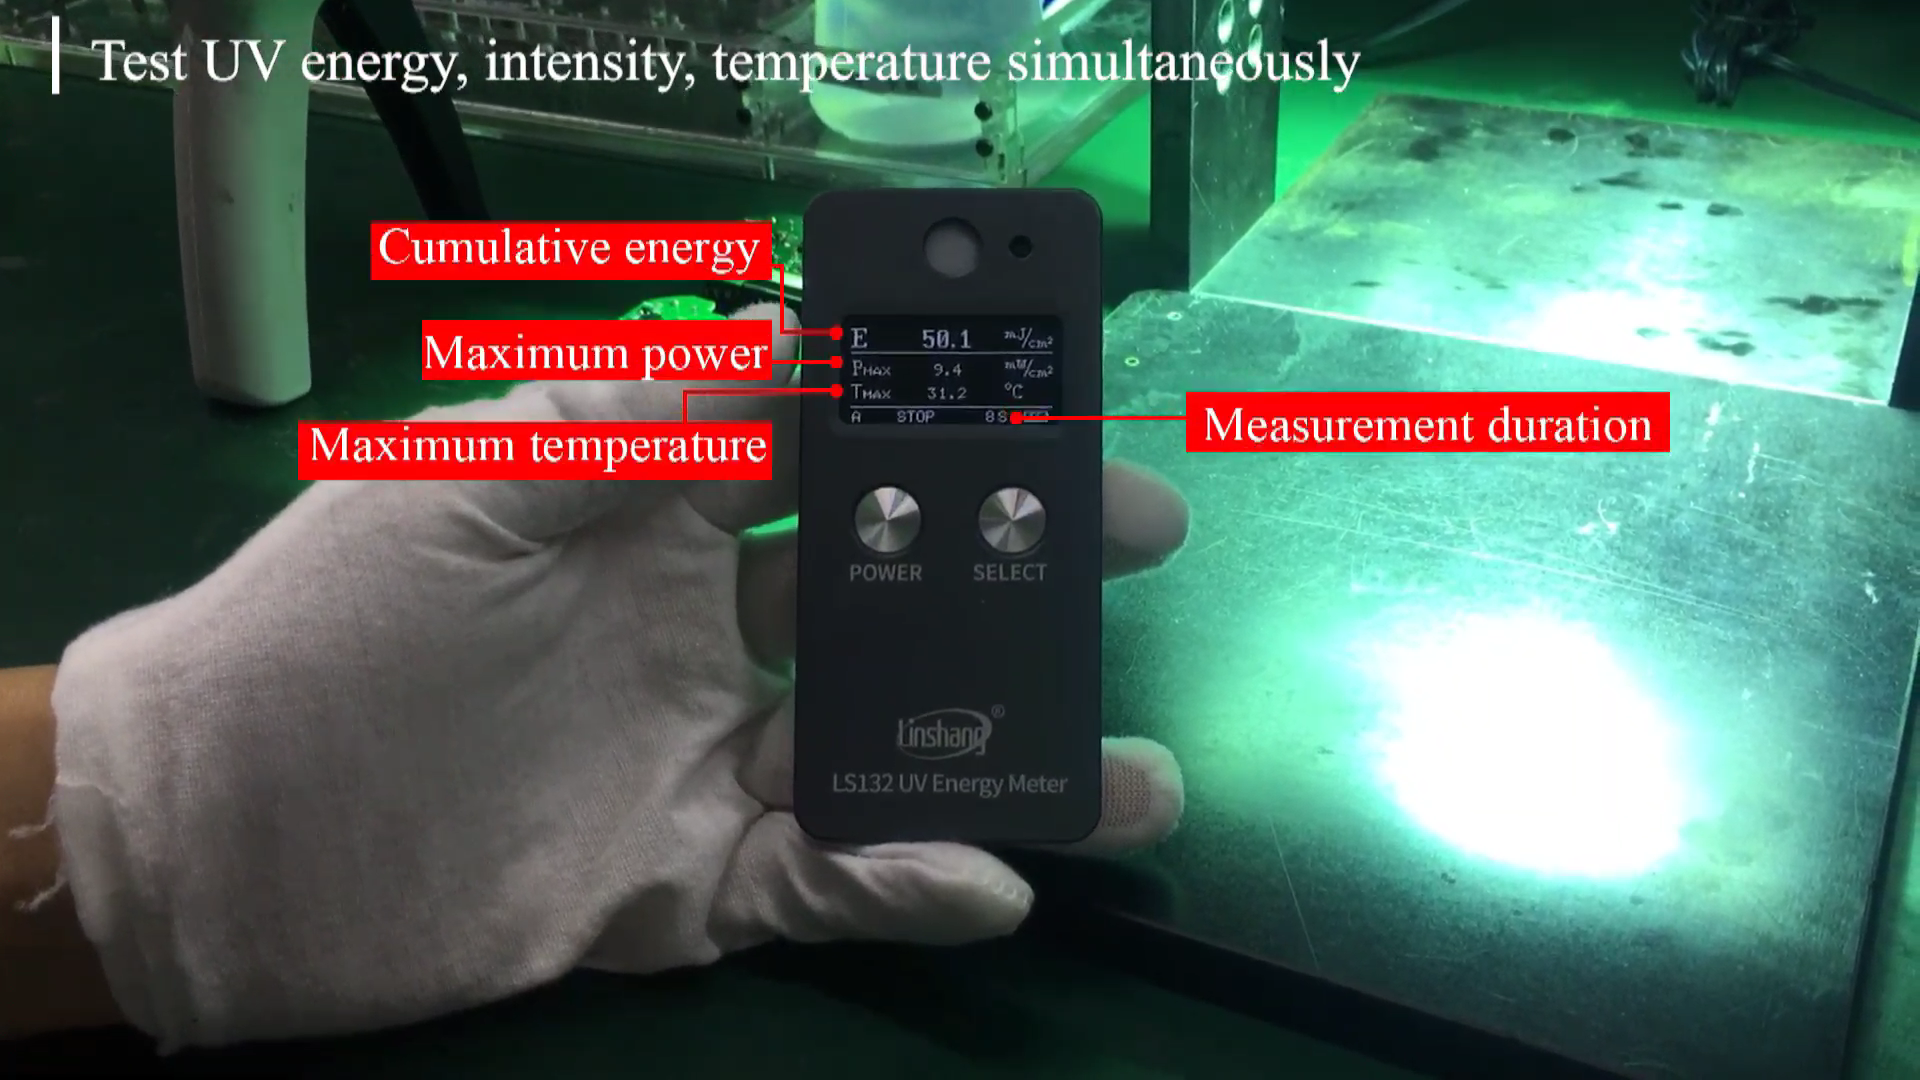 Ultraviolet Radiometer Linshang LS132 UV Energy Meter for 365nm Halogen High Pressure Mercury Lamp Curing Exposure Machine